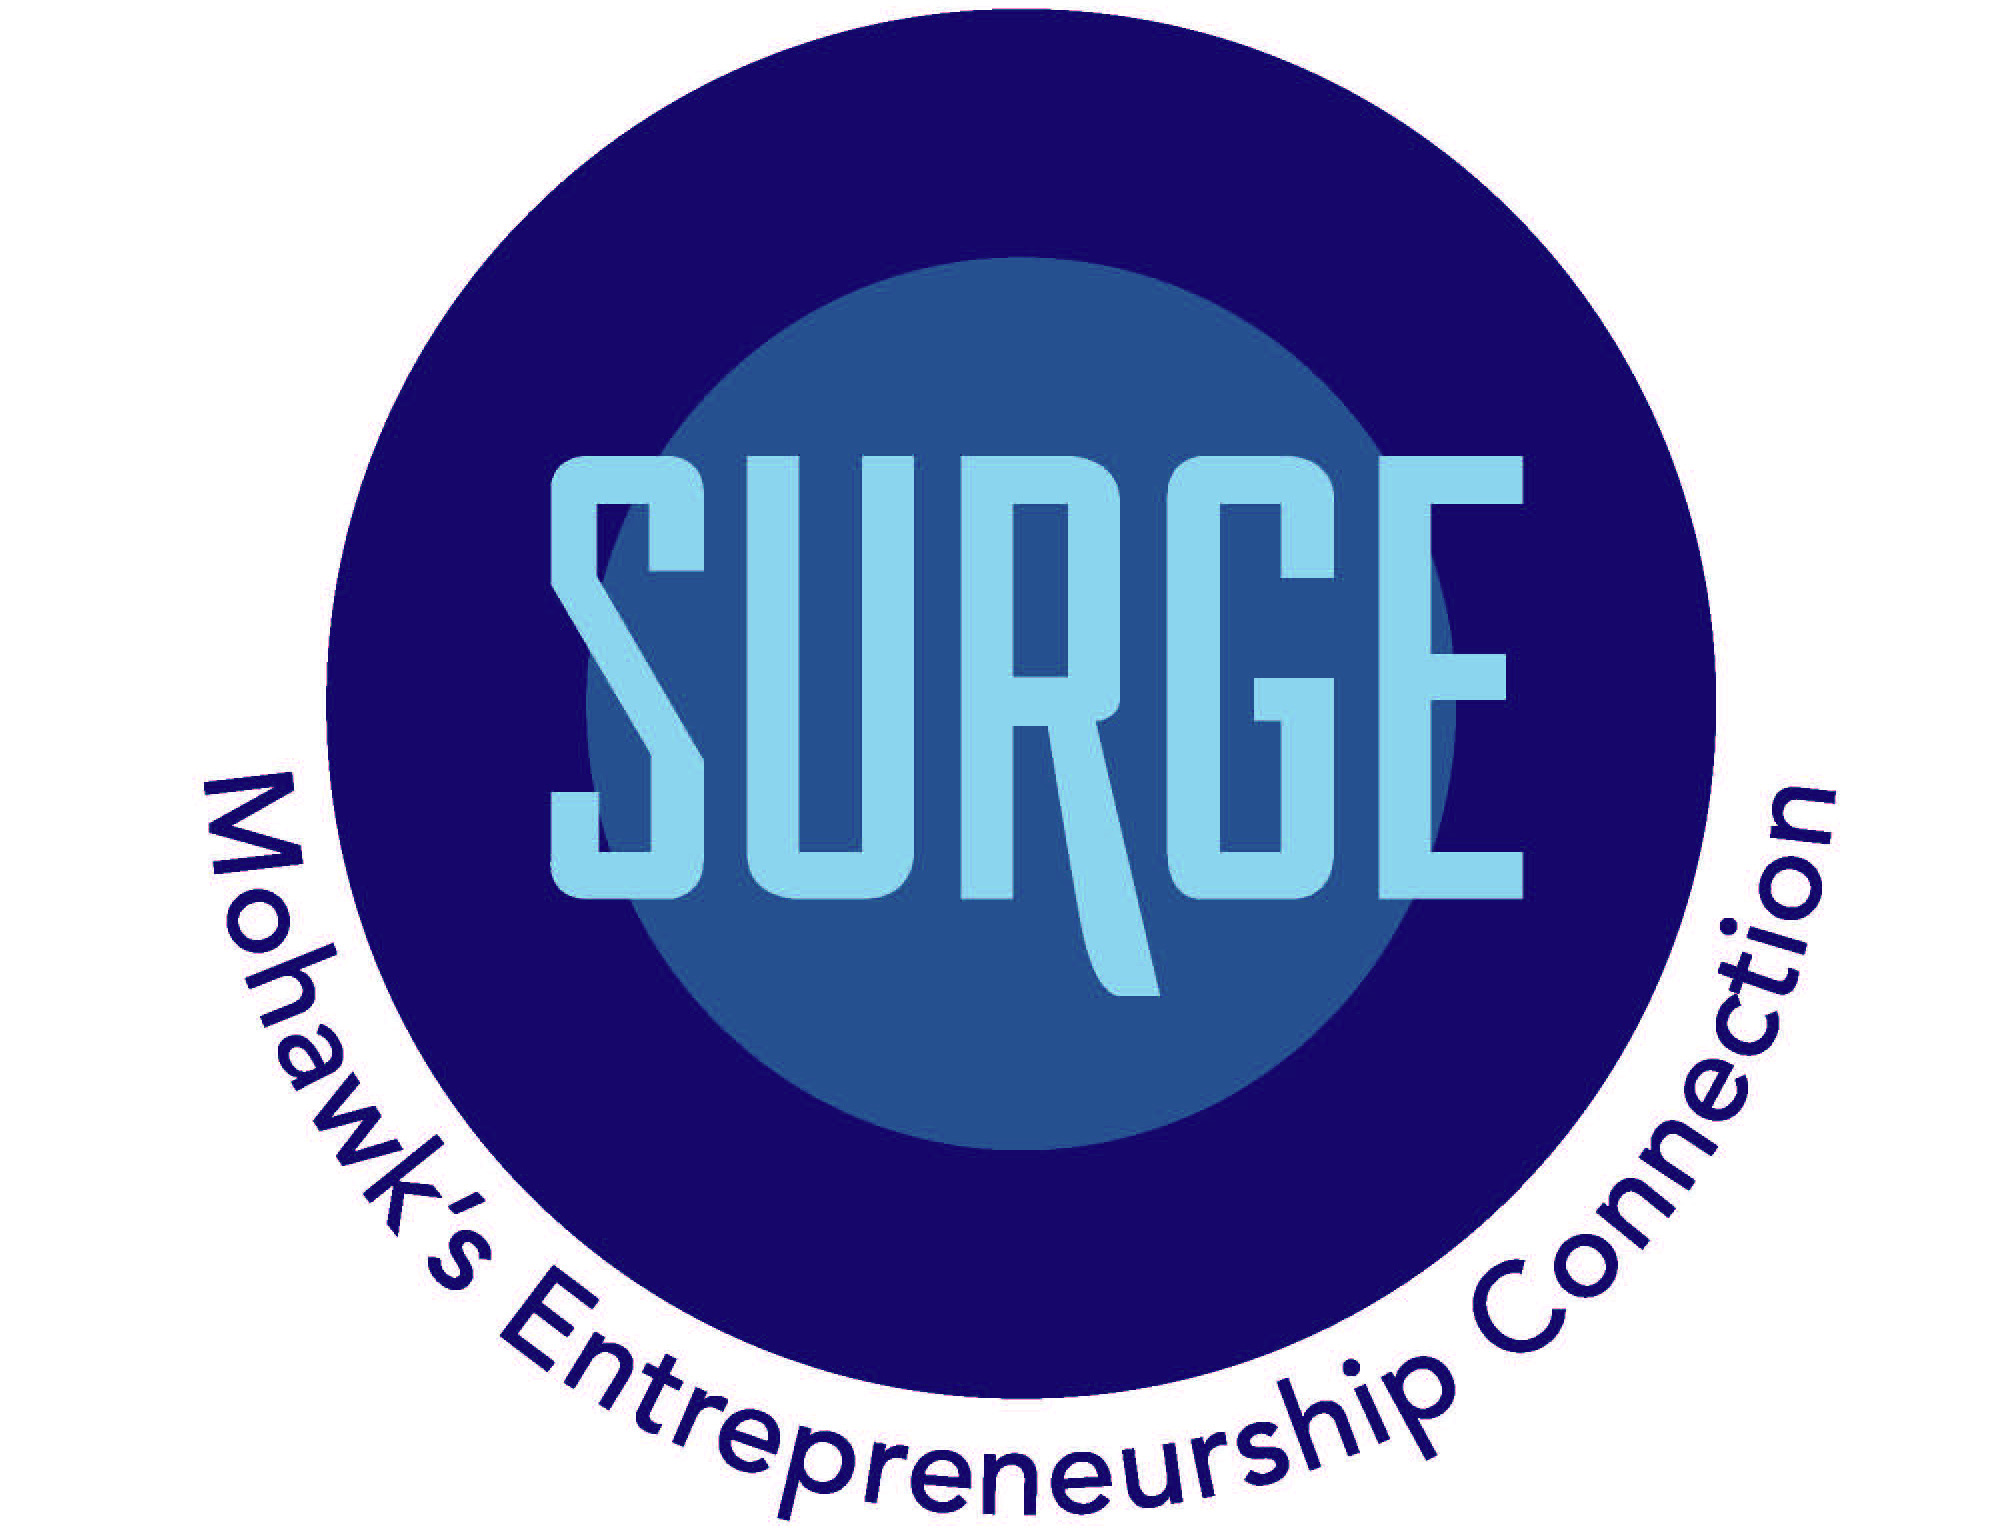 SURGE: Mohawk's Entrepreneurship Connection